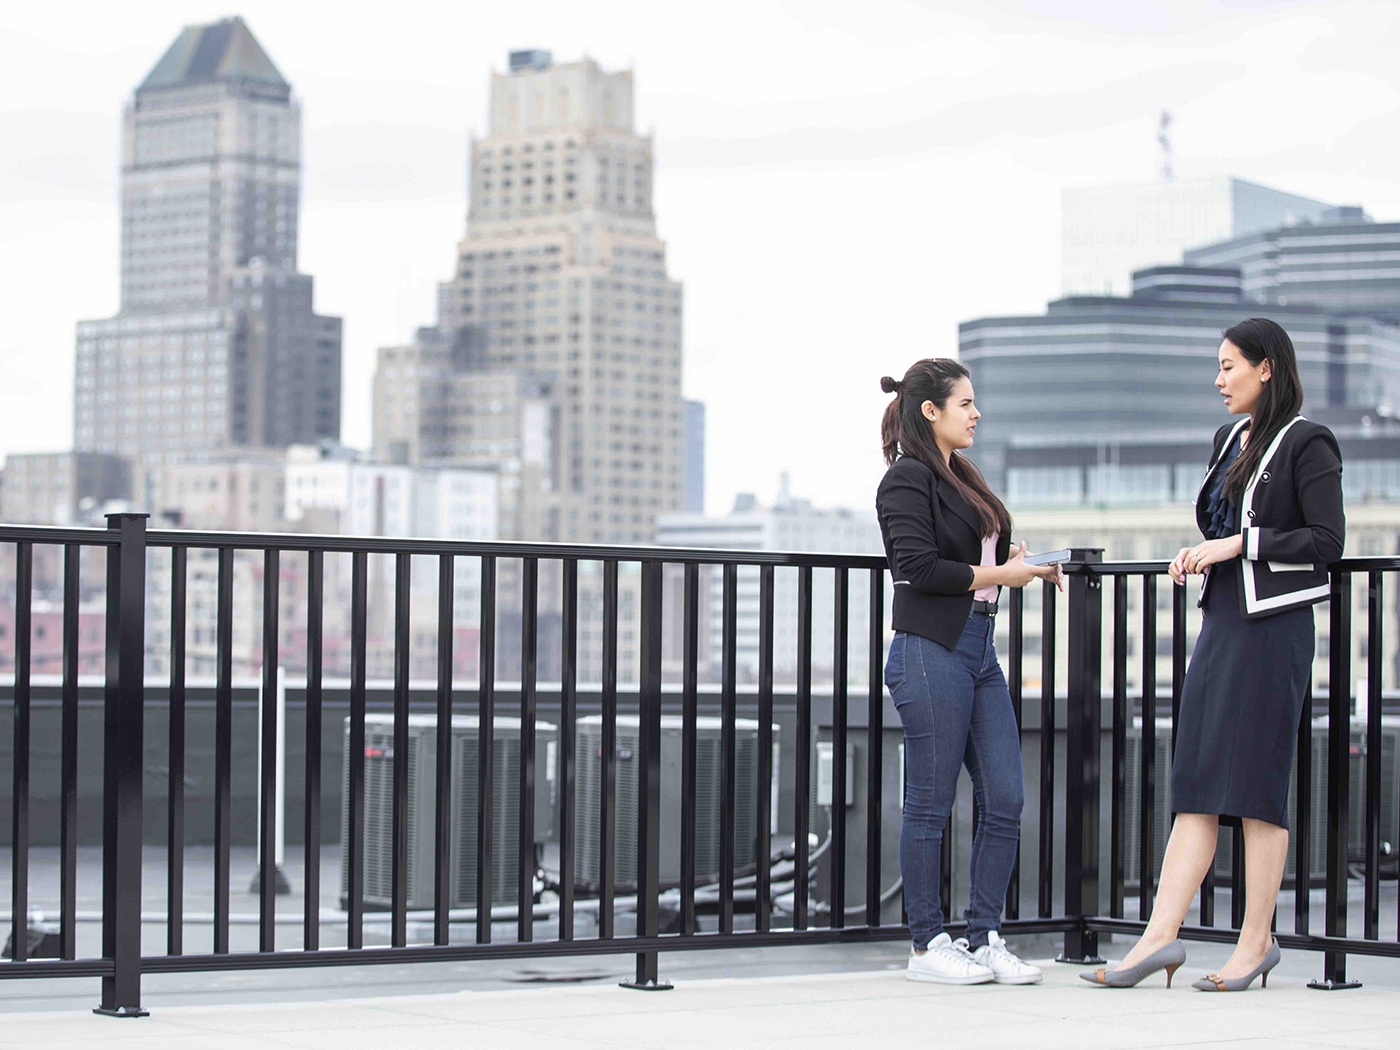 Rooftop - Rooftop access with a view of Newark or a perfect place to end the day.